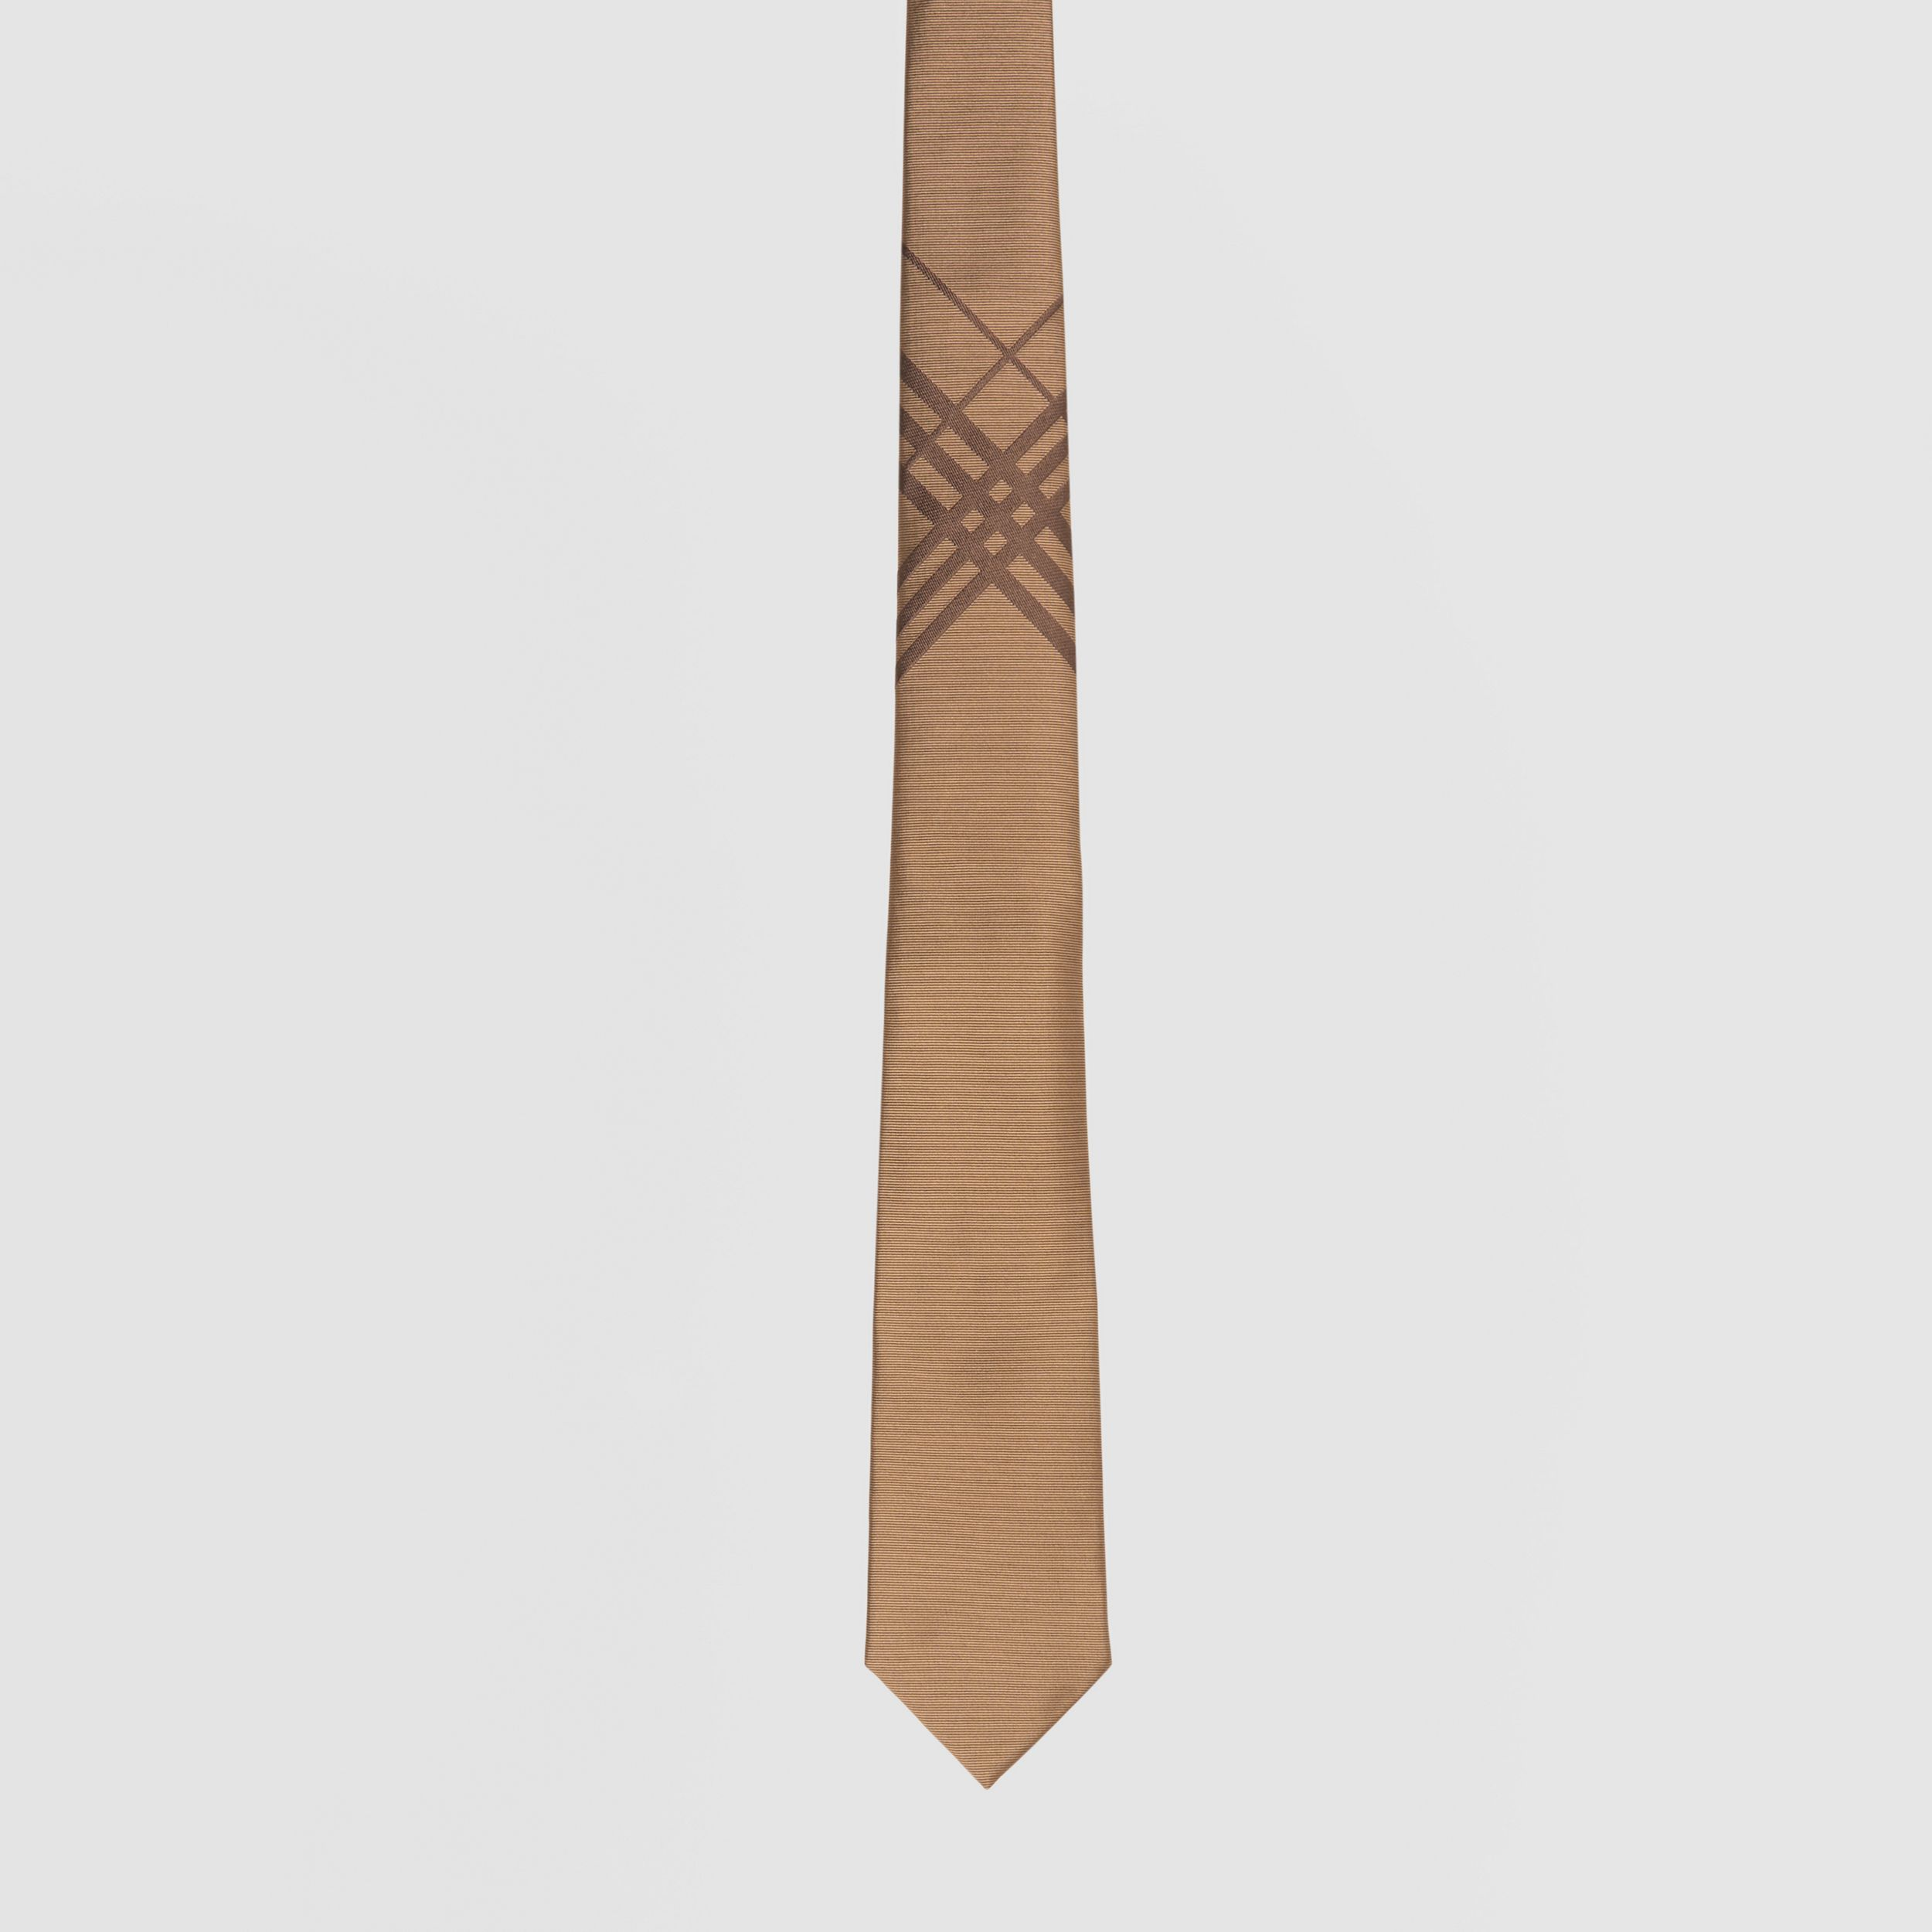 Classic Cut Check Silk Jacquard Tie in Caramel - Men | Burberry - 4